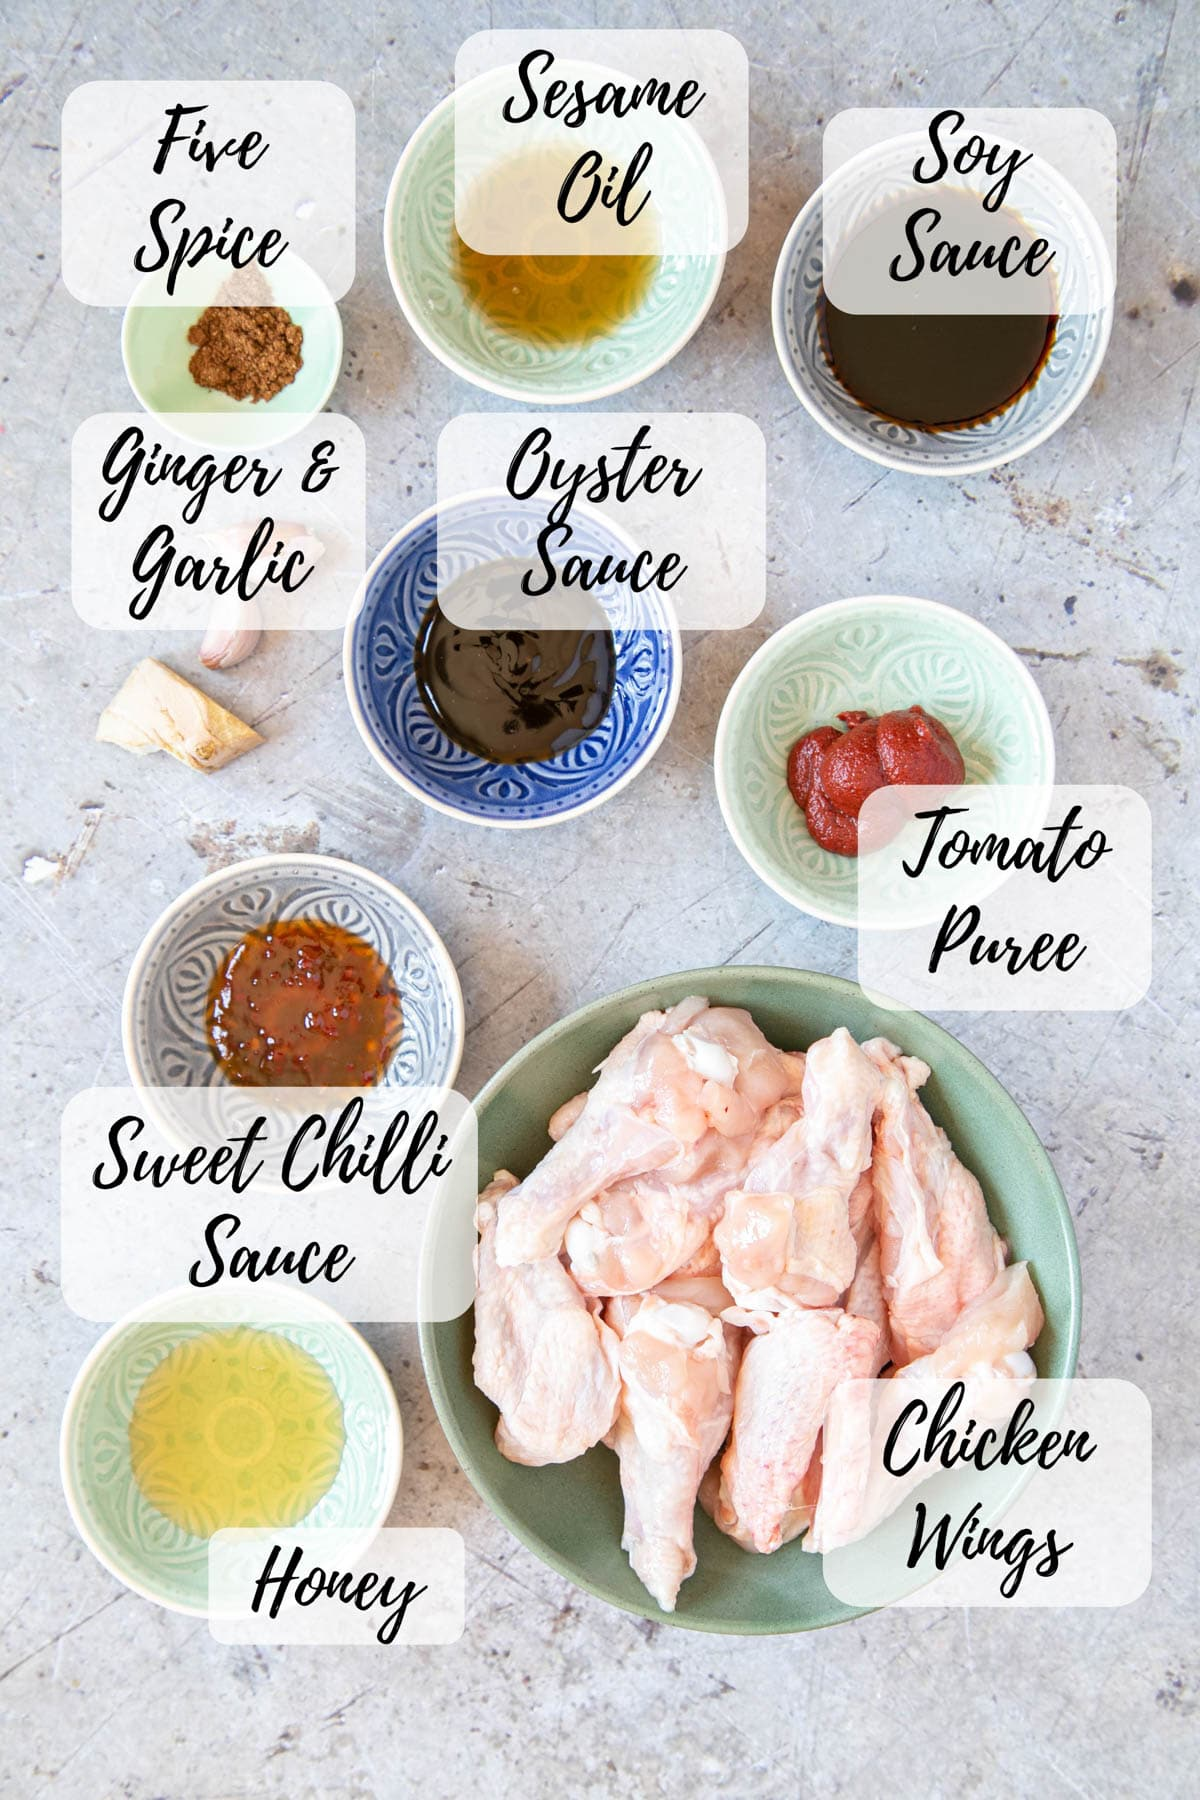 The ingredients for sticky Asian chicken wings: chicken, tomato paste, sweet chilli sauce, honey, ginger, garlic, oyster sauce, soy sauce, sesame oil, and fie spice.